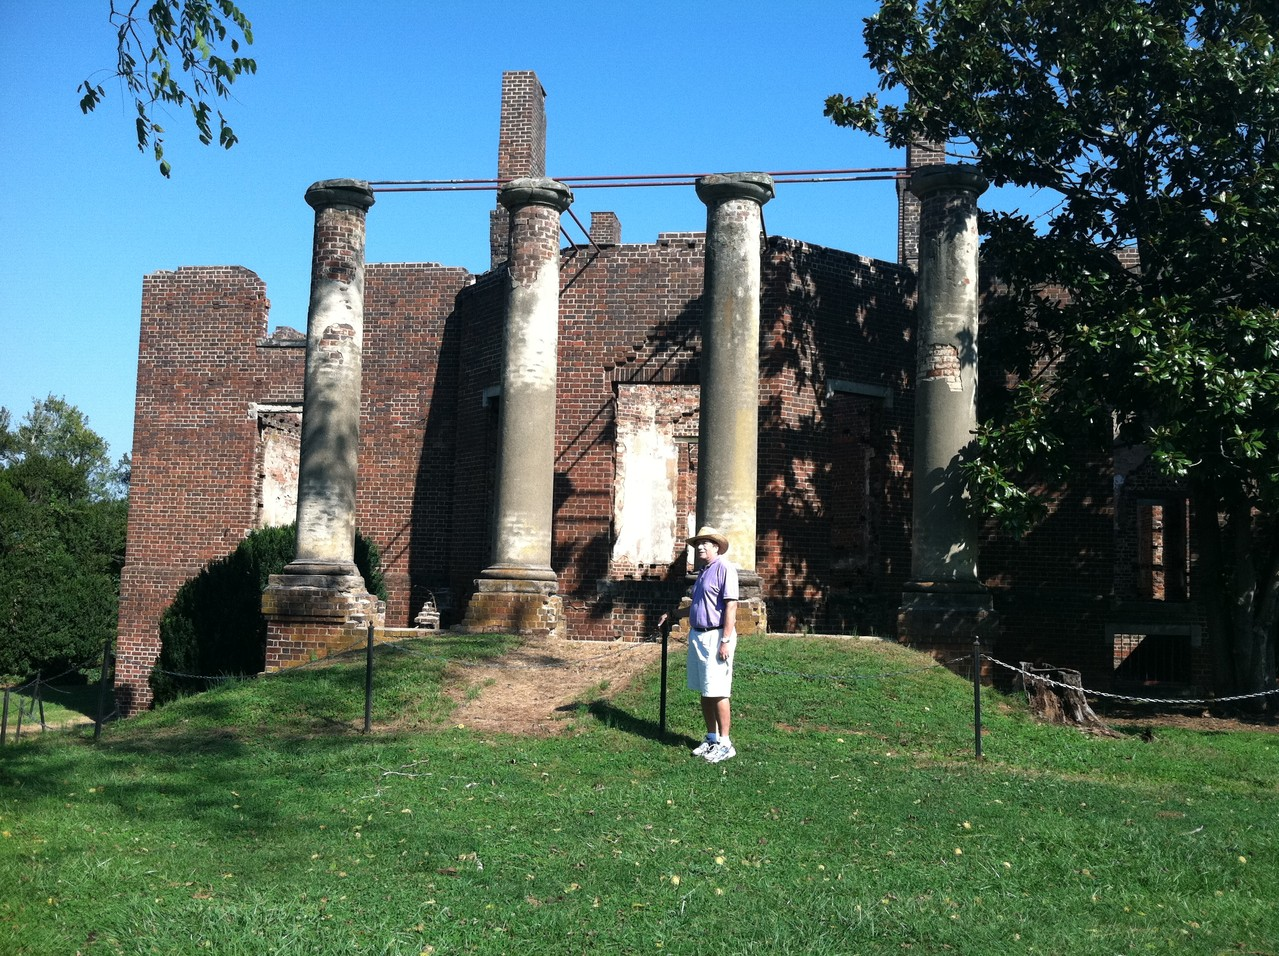 Barboursville ruins, home of Gov. of Va Randolph, house designed by Jefferson, burned in 1888